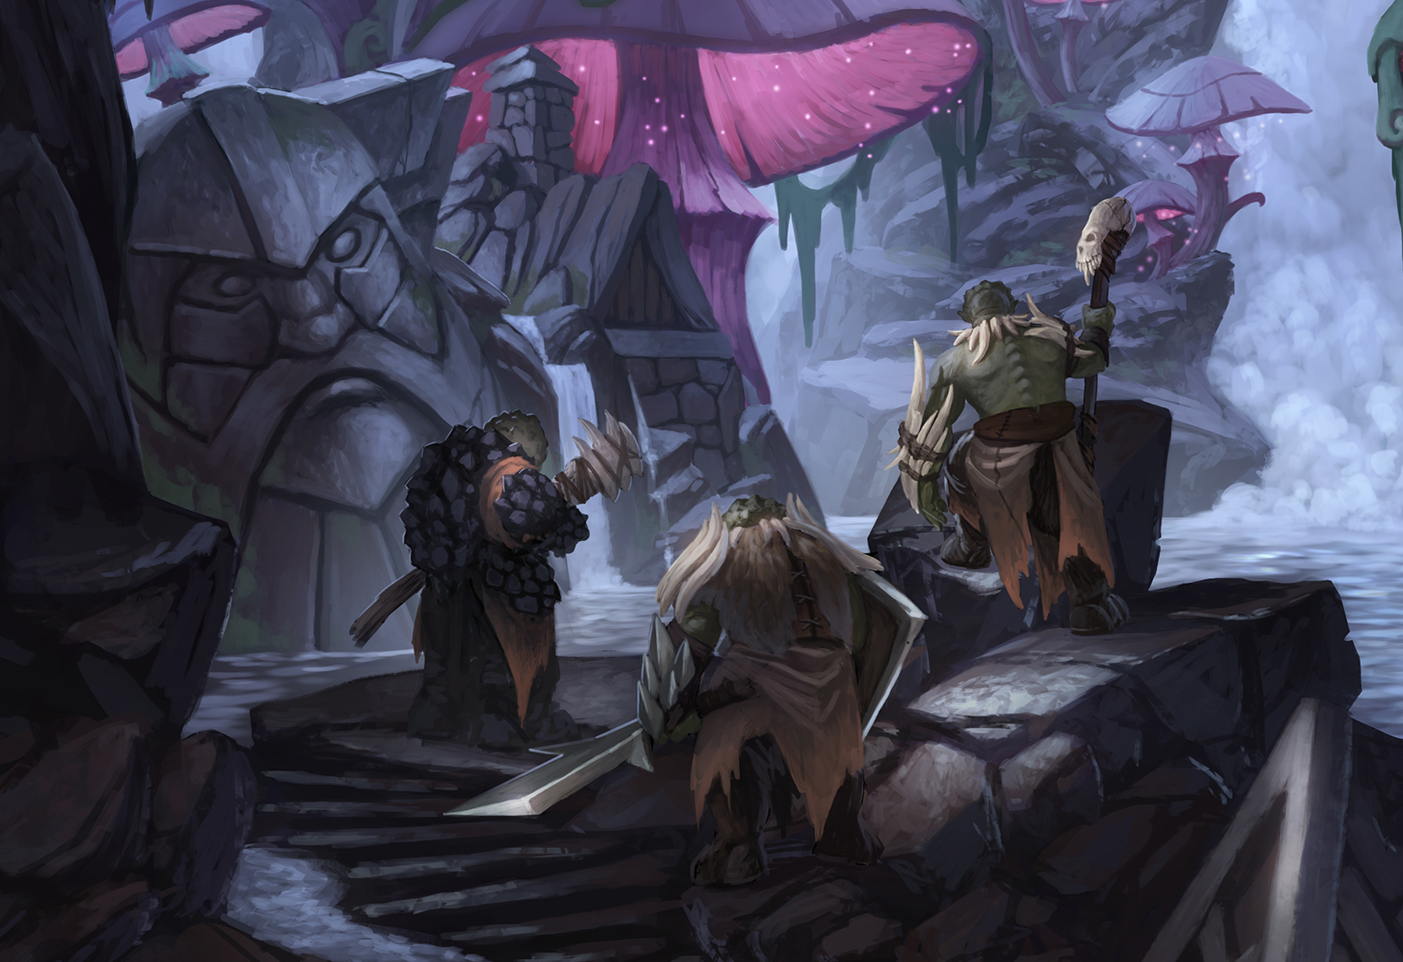 A party of orcs discover a dwarven relic